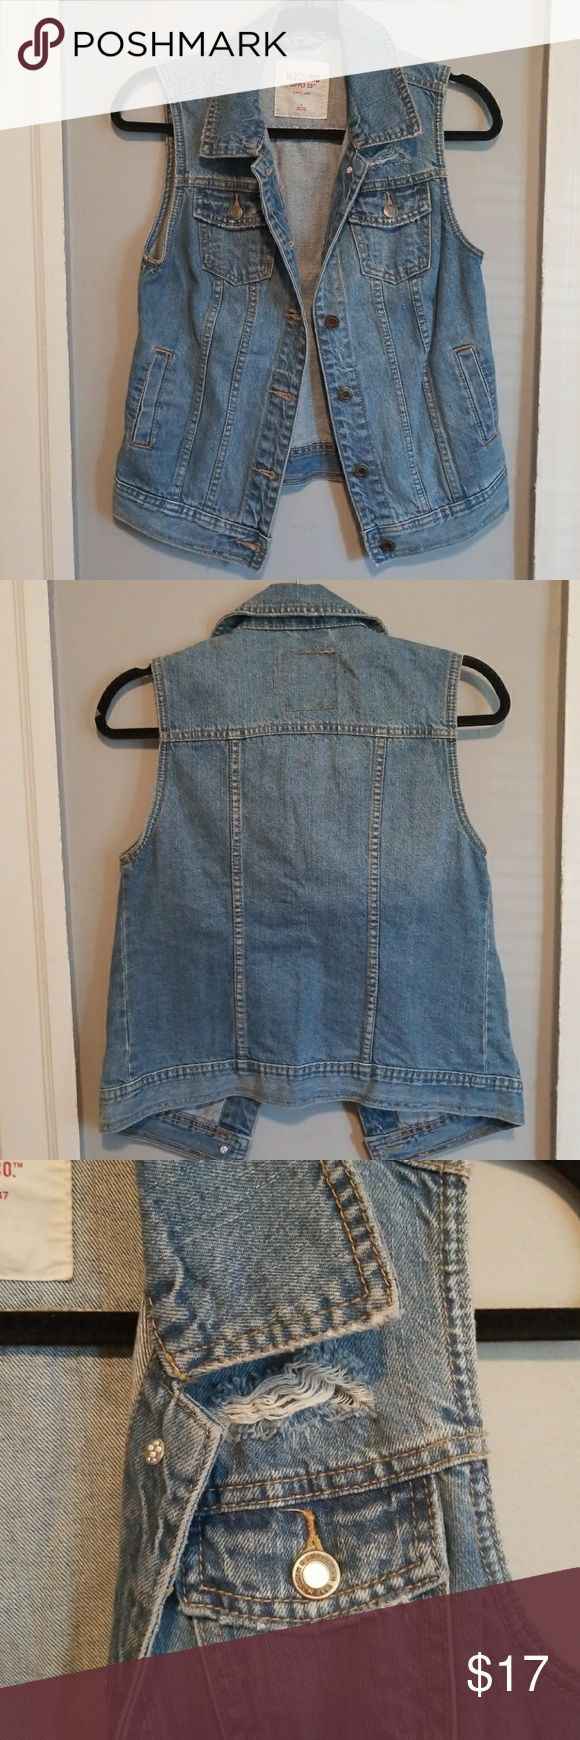 NWOT edgy and chic sleeveless jean jacket. Size S. NWOT cute and chic distressed sleeveless jean jacket. Size small. Not nasty gal, using for exposure :)  Bundles welcomed!  Make me an offer! Happy poshing! Nasty Gal Jackets & Coats